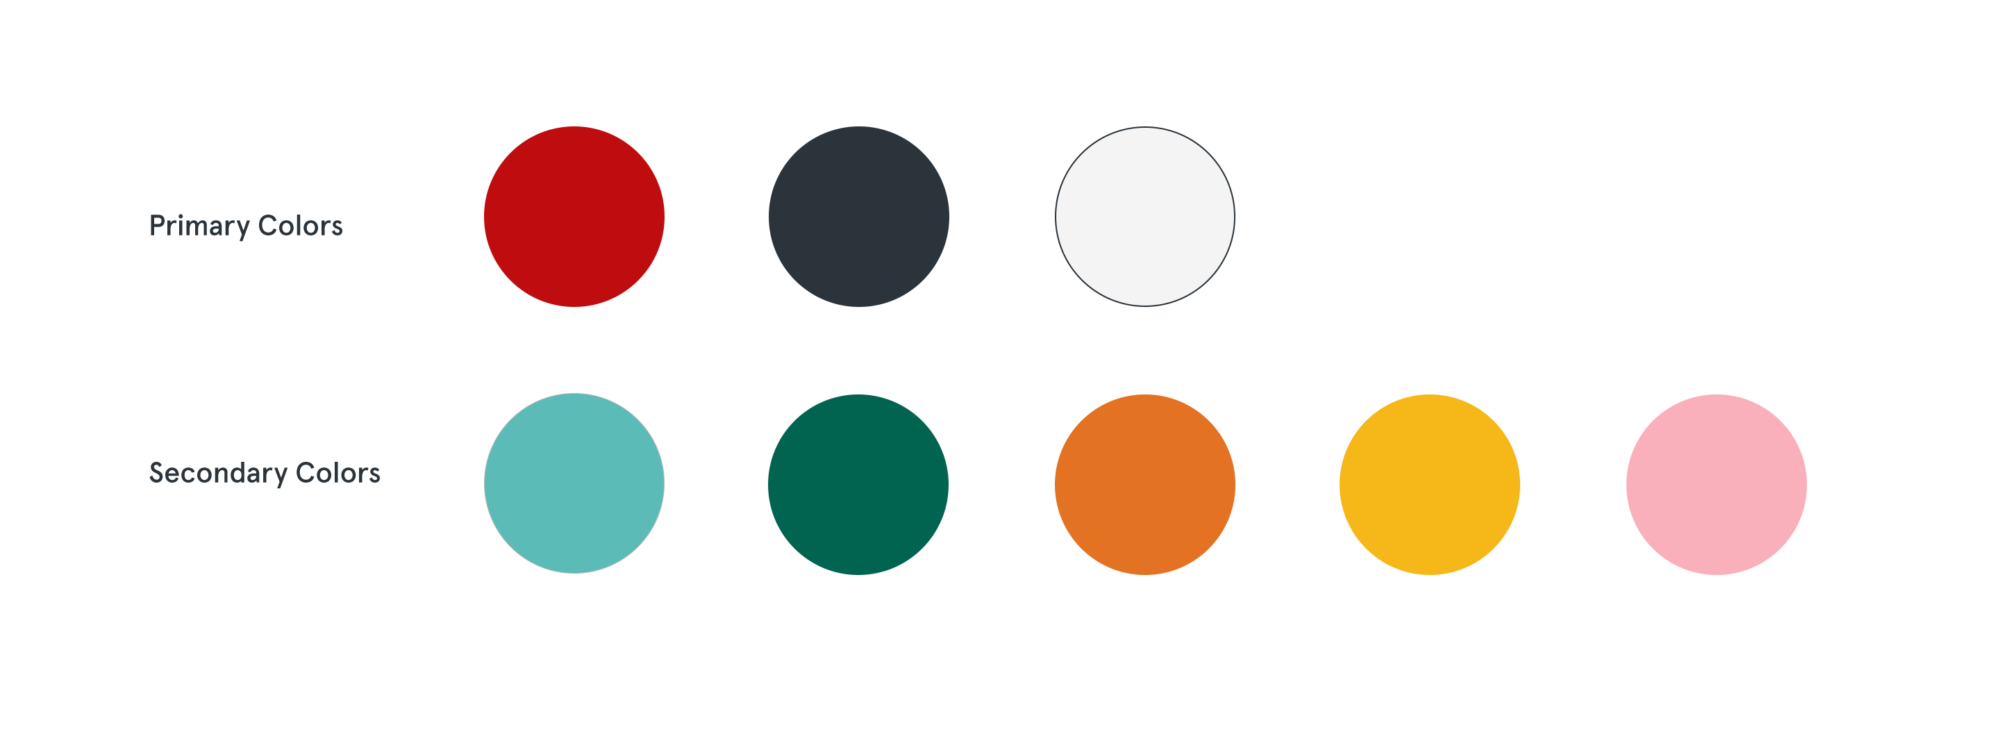 Primary and secondary color choices for the Tenement Museum website redesign